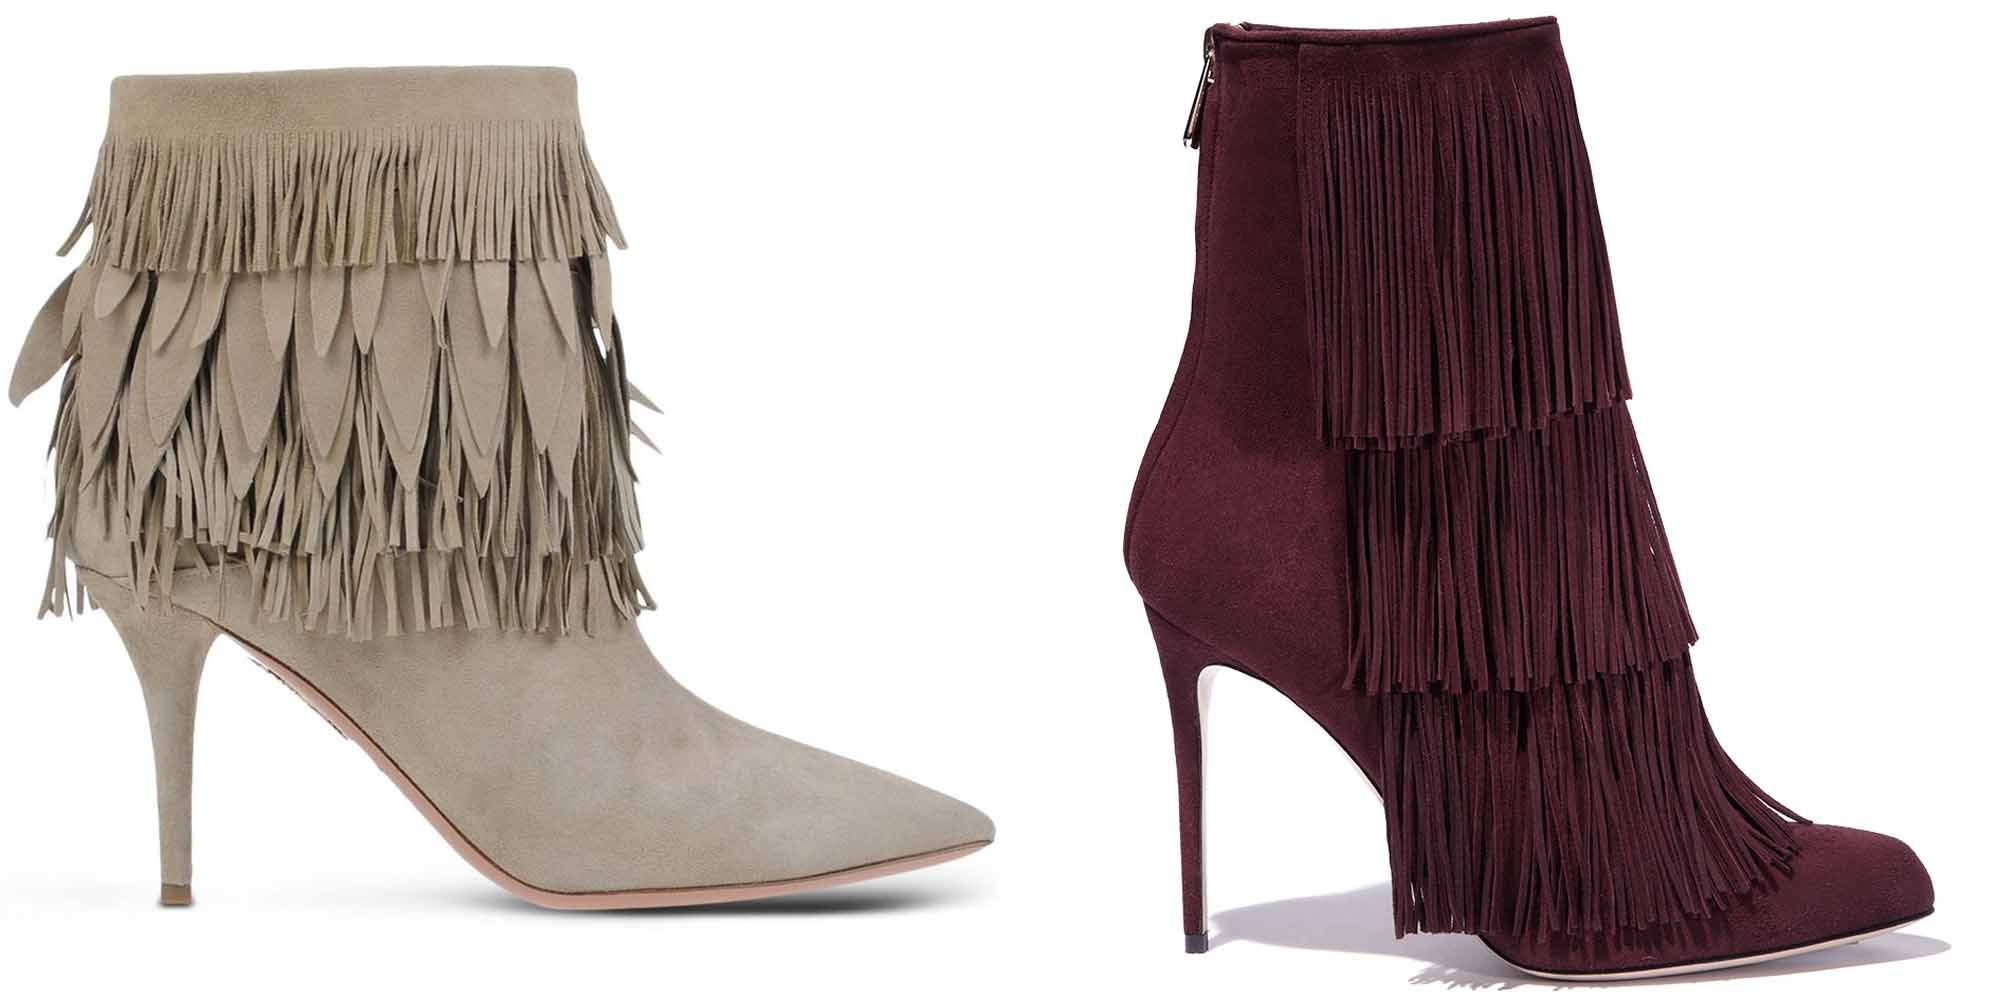 "<p><em>Aquazzura boot, $995, <a href=""https://shop.harpersbazaar.com/designers/a/aquazzura/beige-suede-fringed-ankle-boot-4968.html"" target=""_blank"">shopBAZAAR.com</a>; Paul Andrew boot, $1,195, <a href=""https://shop.harpersbazaar.com/designers/paul-andrew/bordeaux-fringe-boot-12/"" target=""_blank"">shopBAZAAR.com</a>. </em></p>"